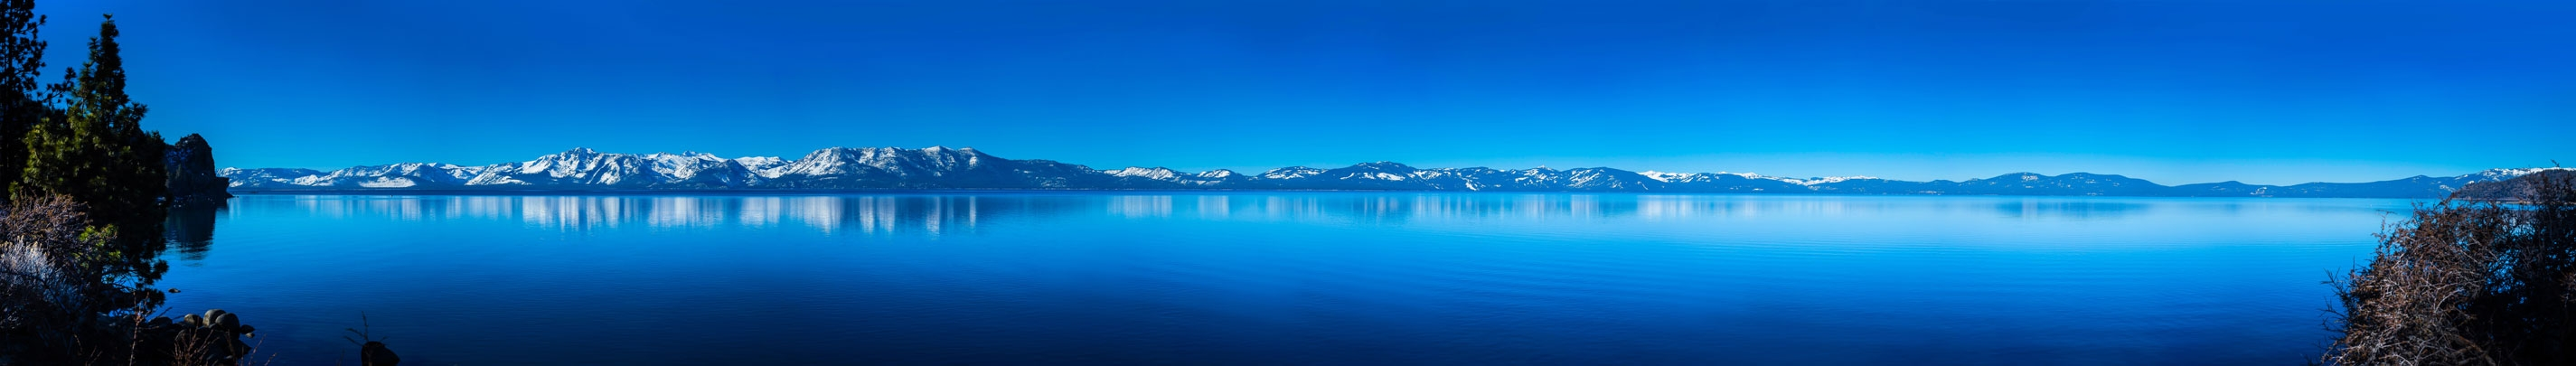 Winter morning at Lake Tahoe from the Nevada side